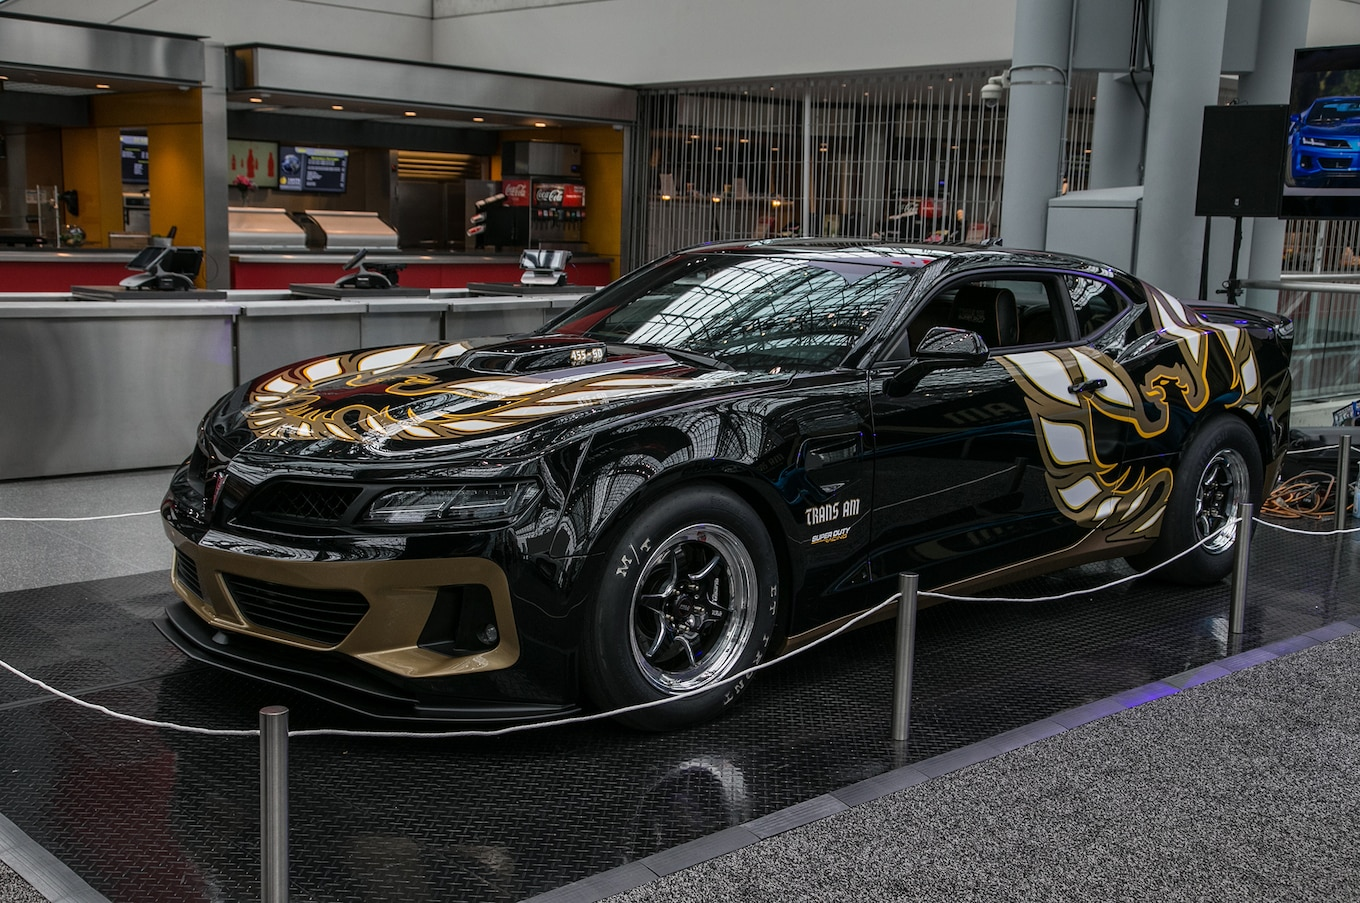 Trans Am Worldwide Takes On The Demon With A 1100 HP